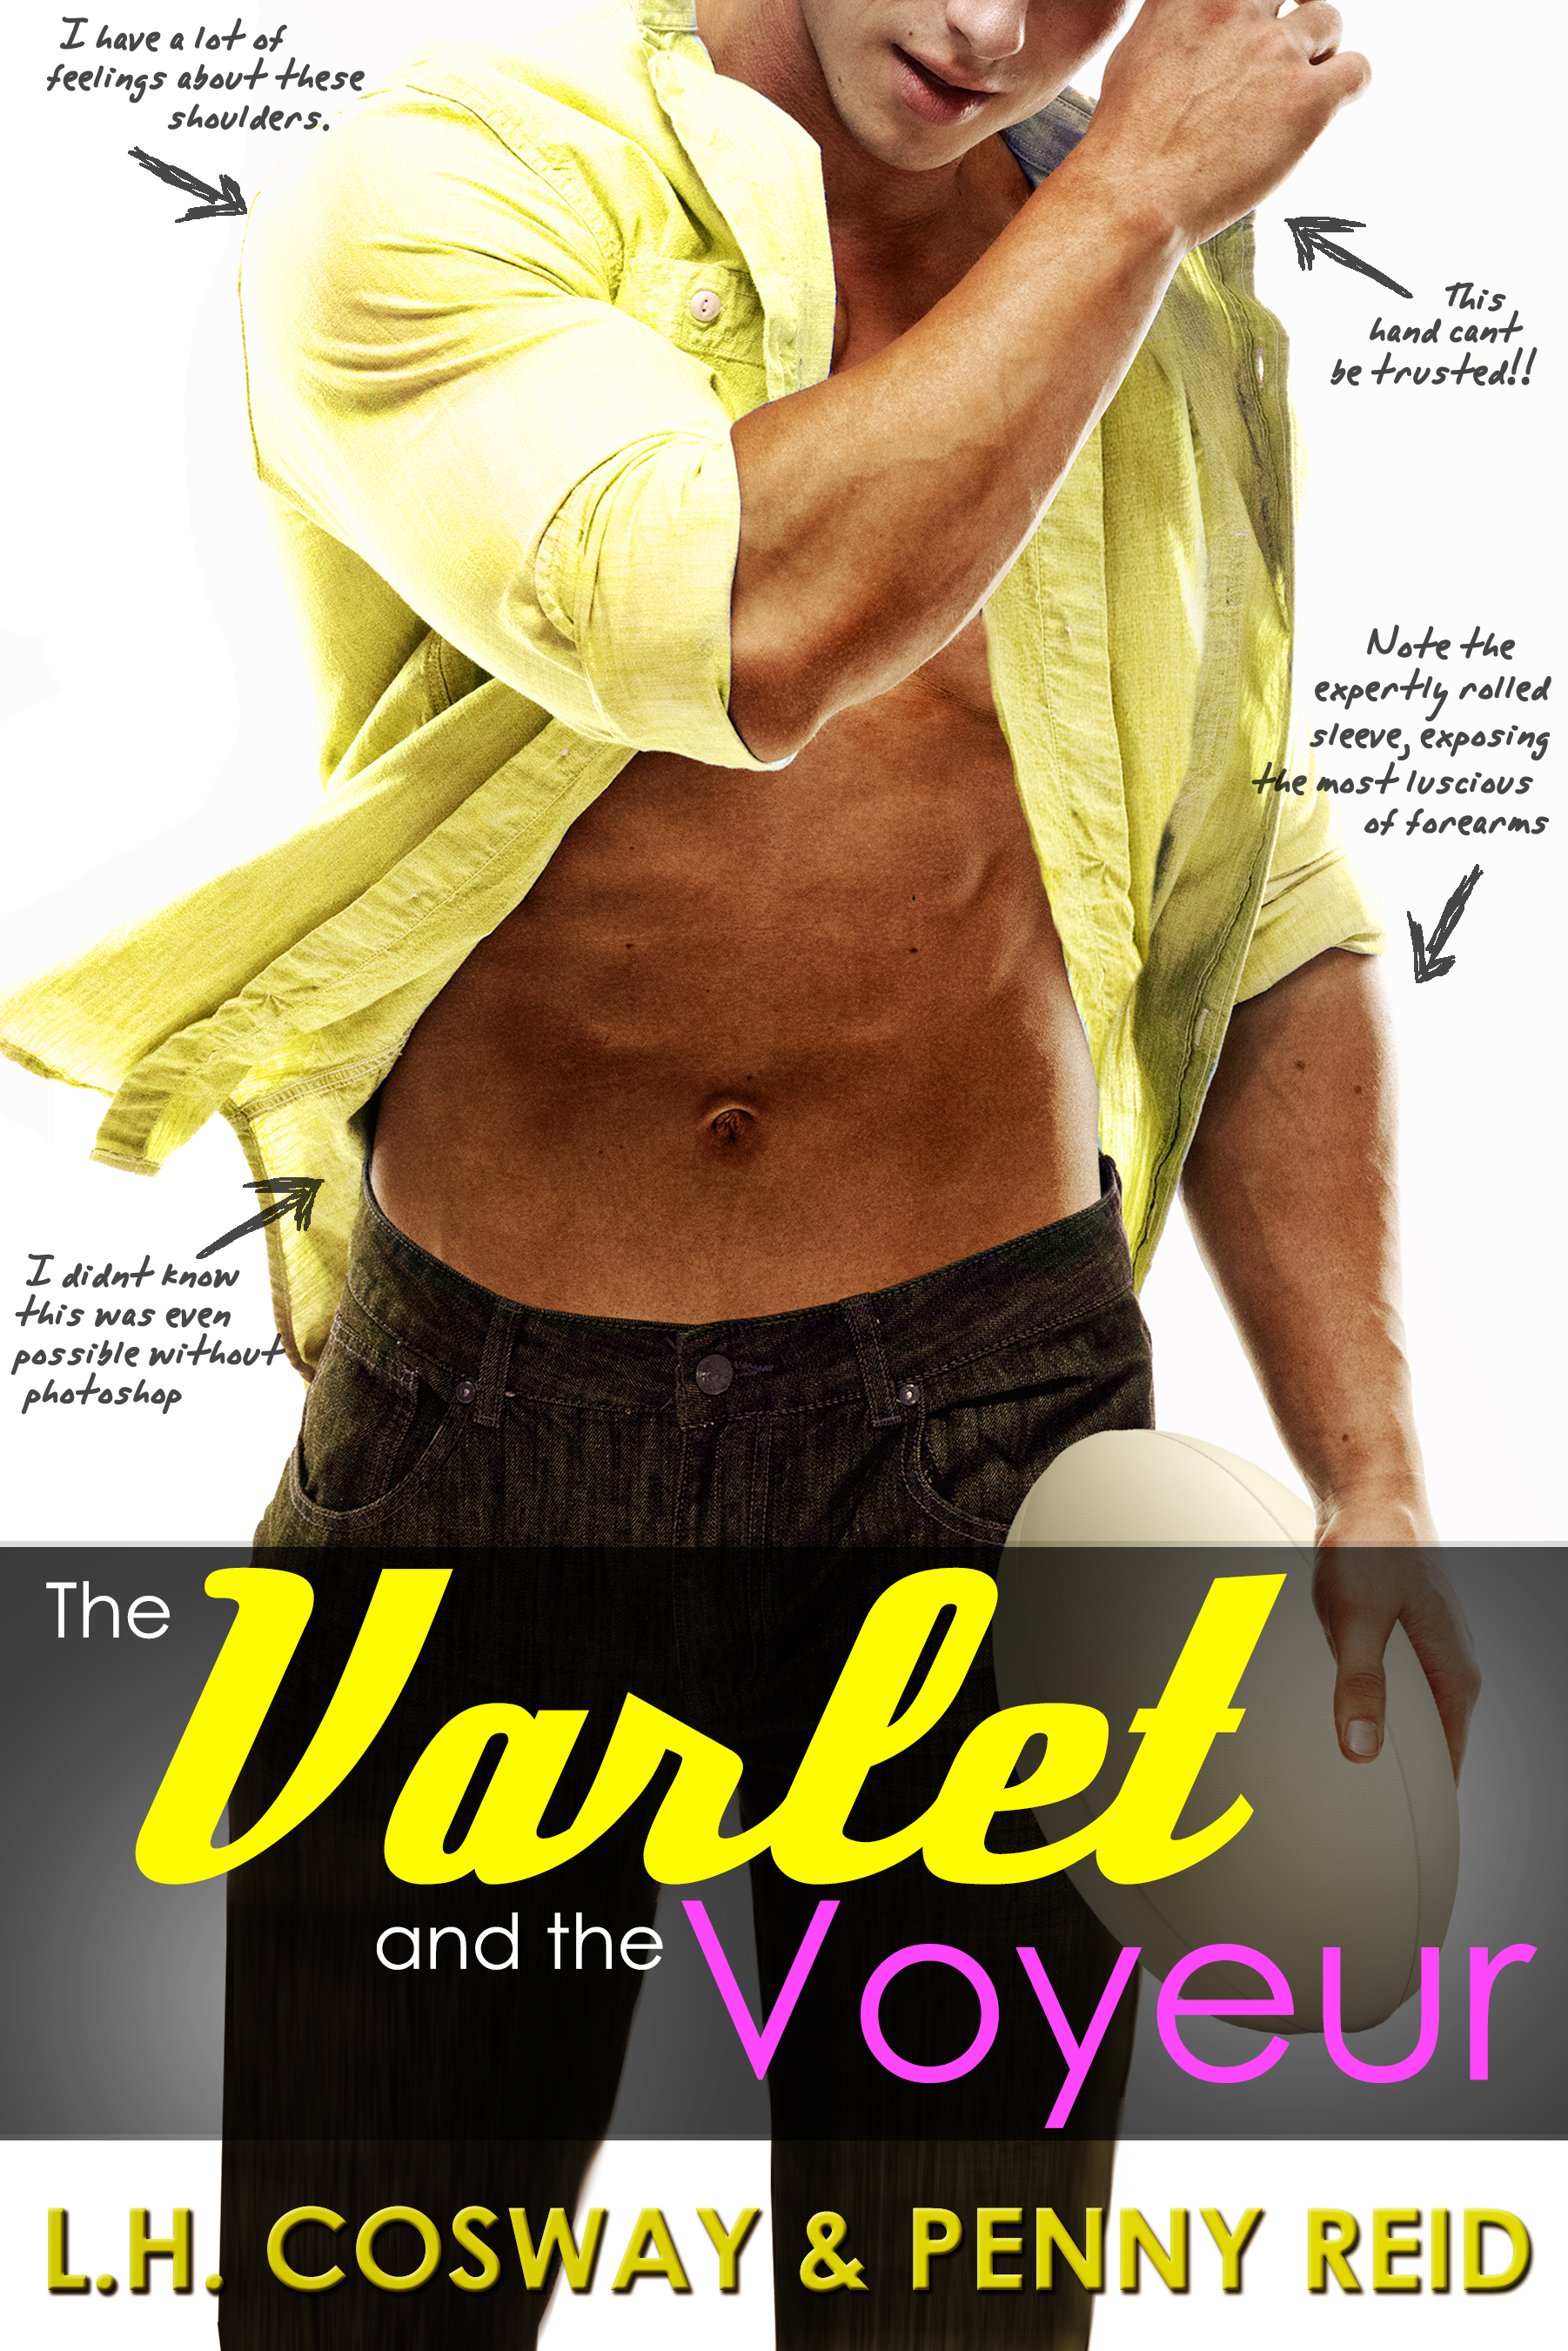 ARC Review: The Varlet and the Voyeur by L.H. Cosway and Penny Reid